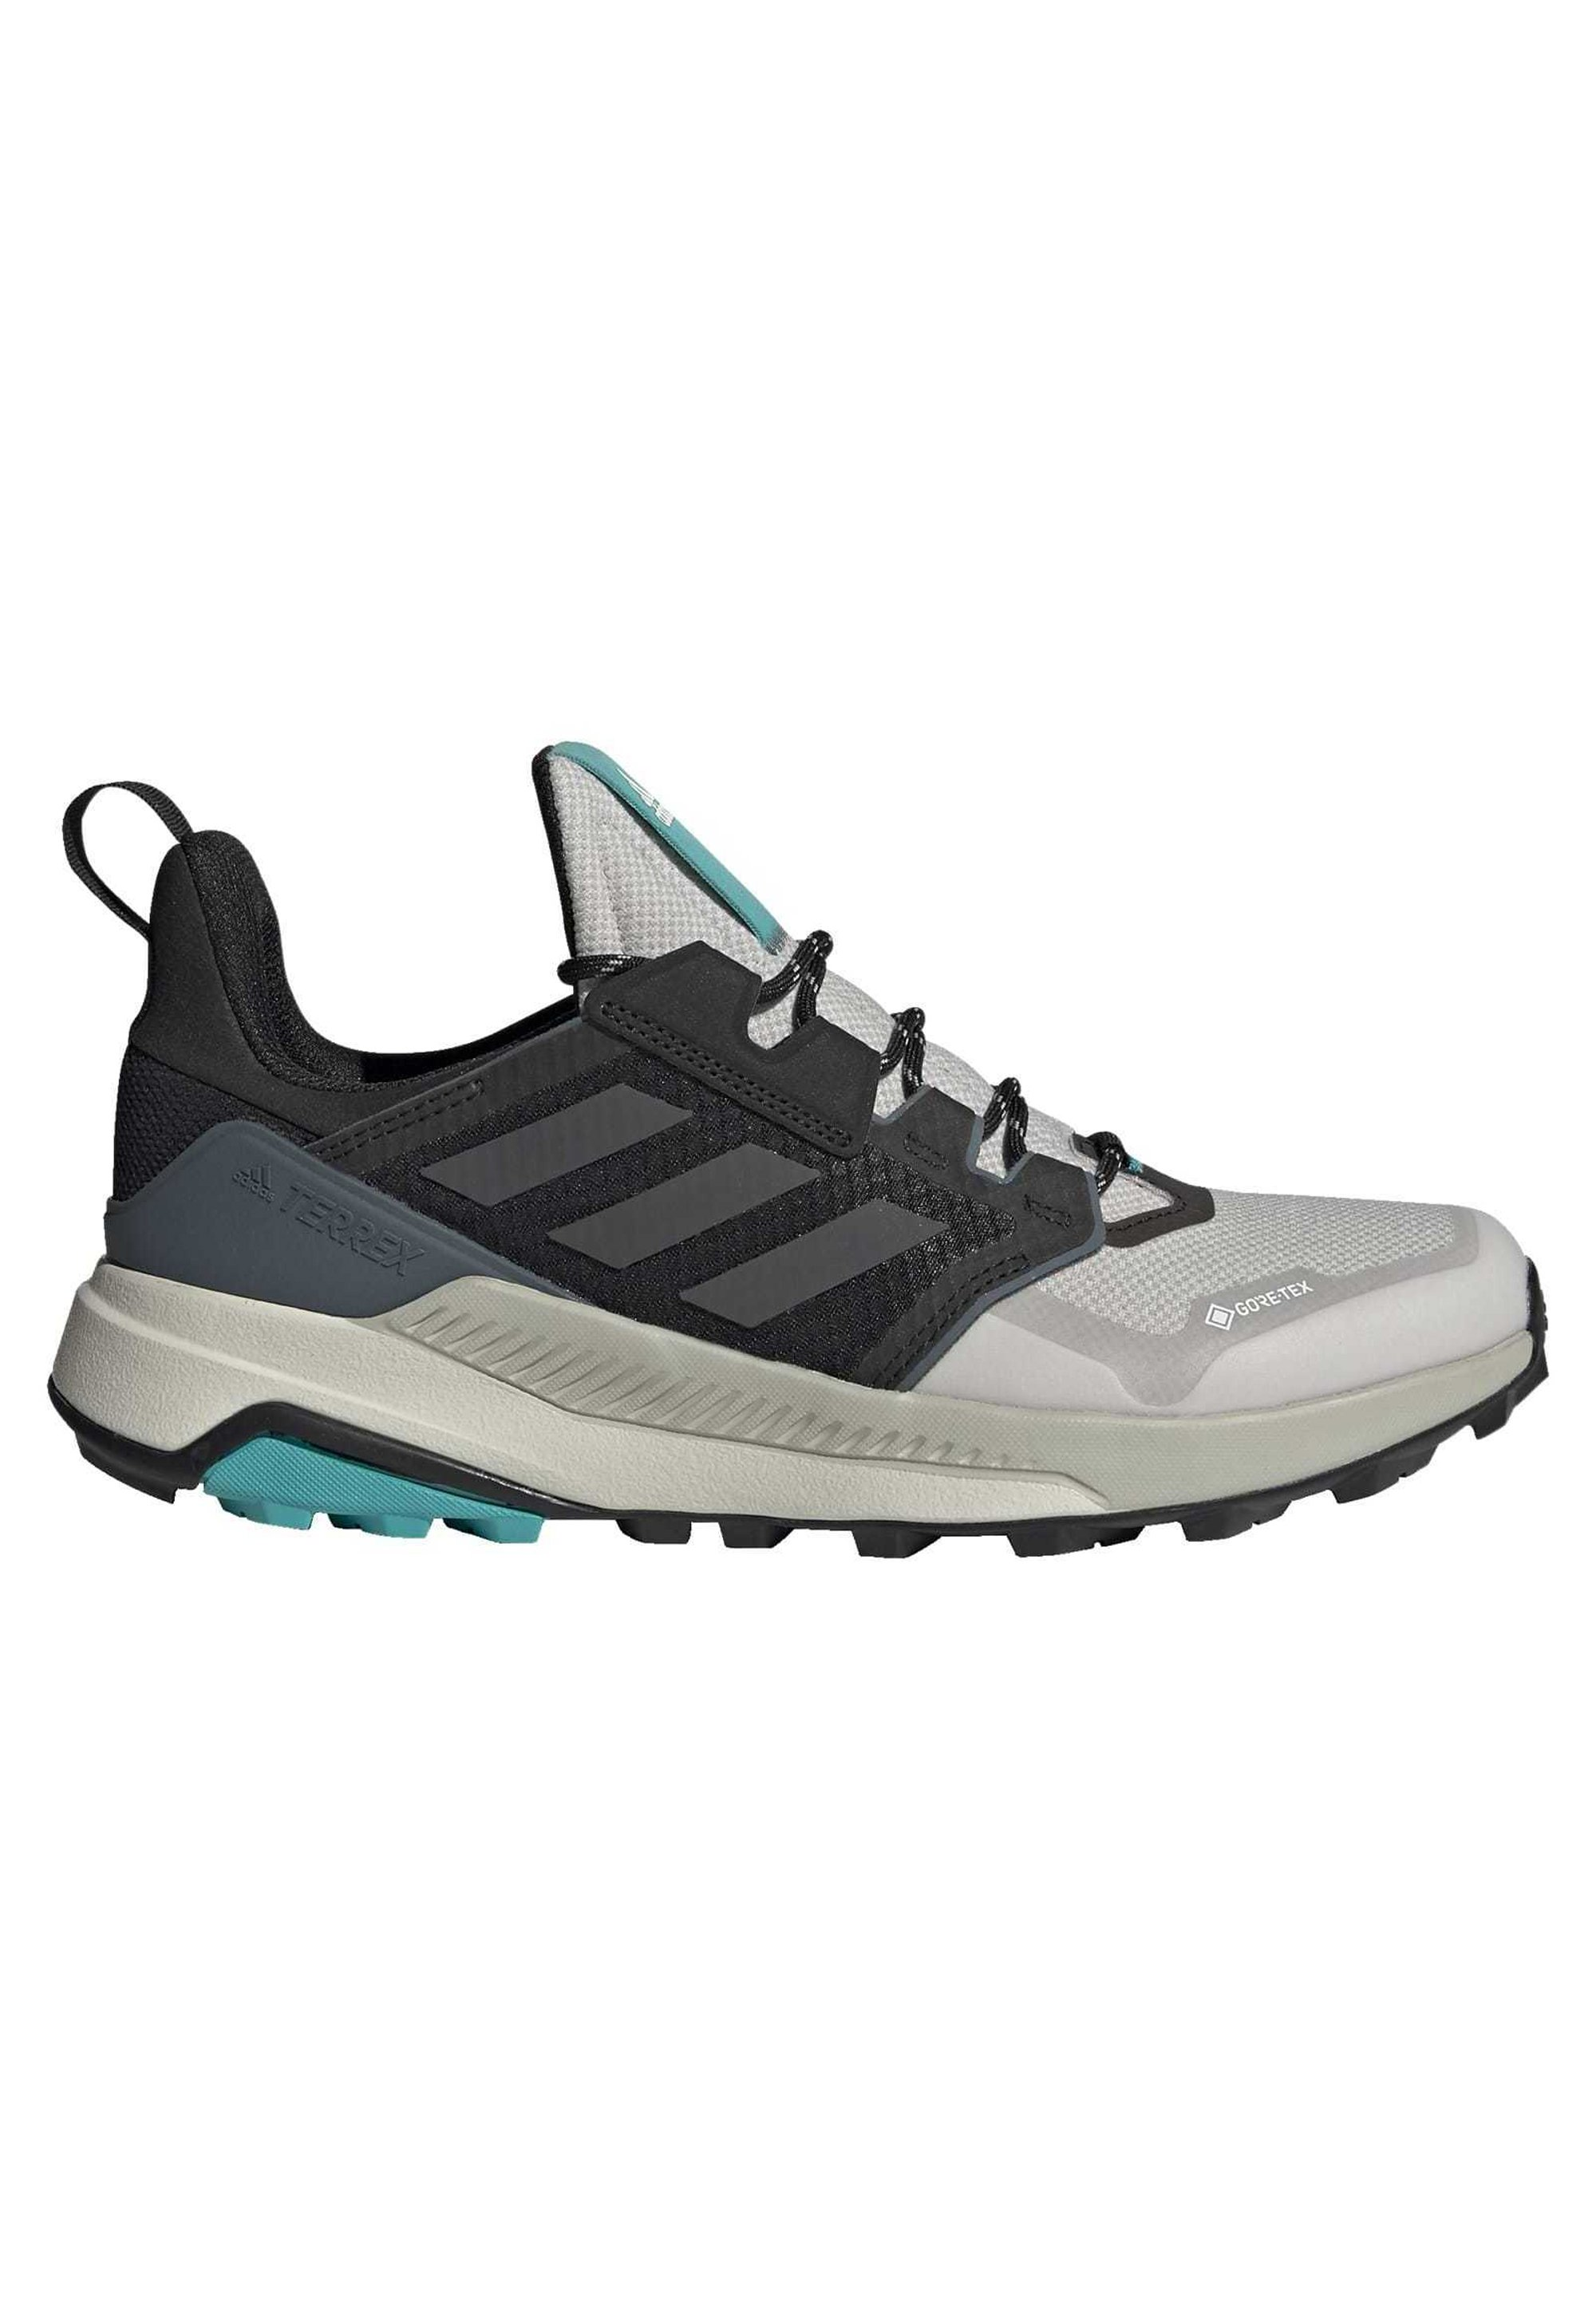 Adidas Performance Terrex Trail Beater Gore-tex Hiking Shoes - Løbesko Grey